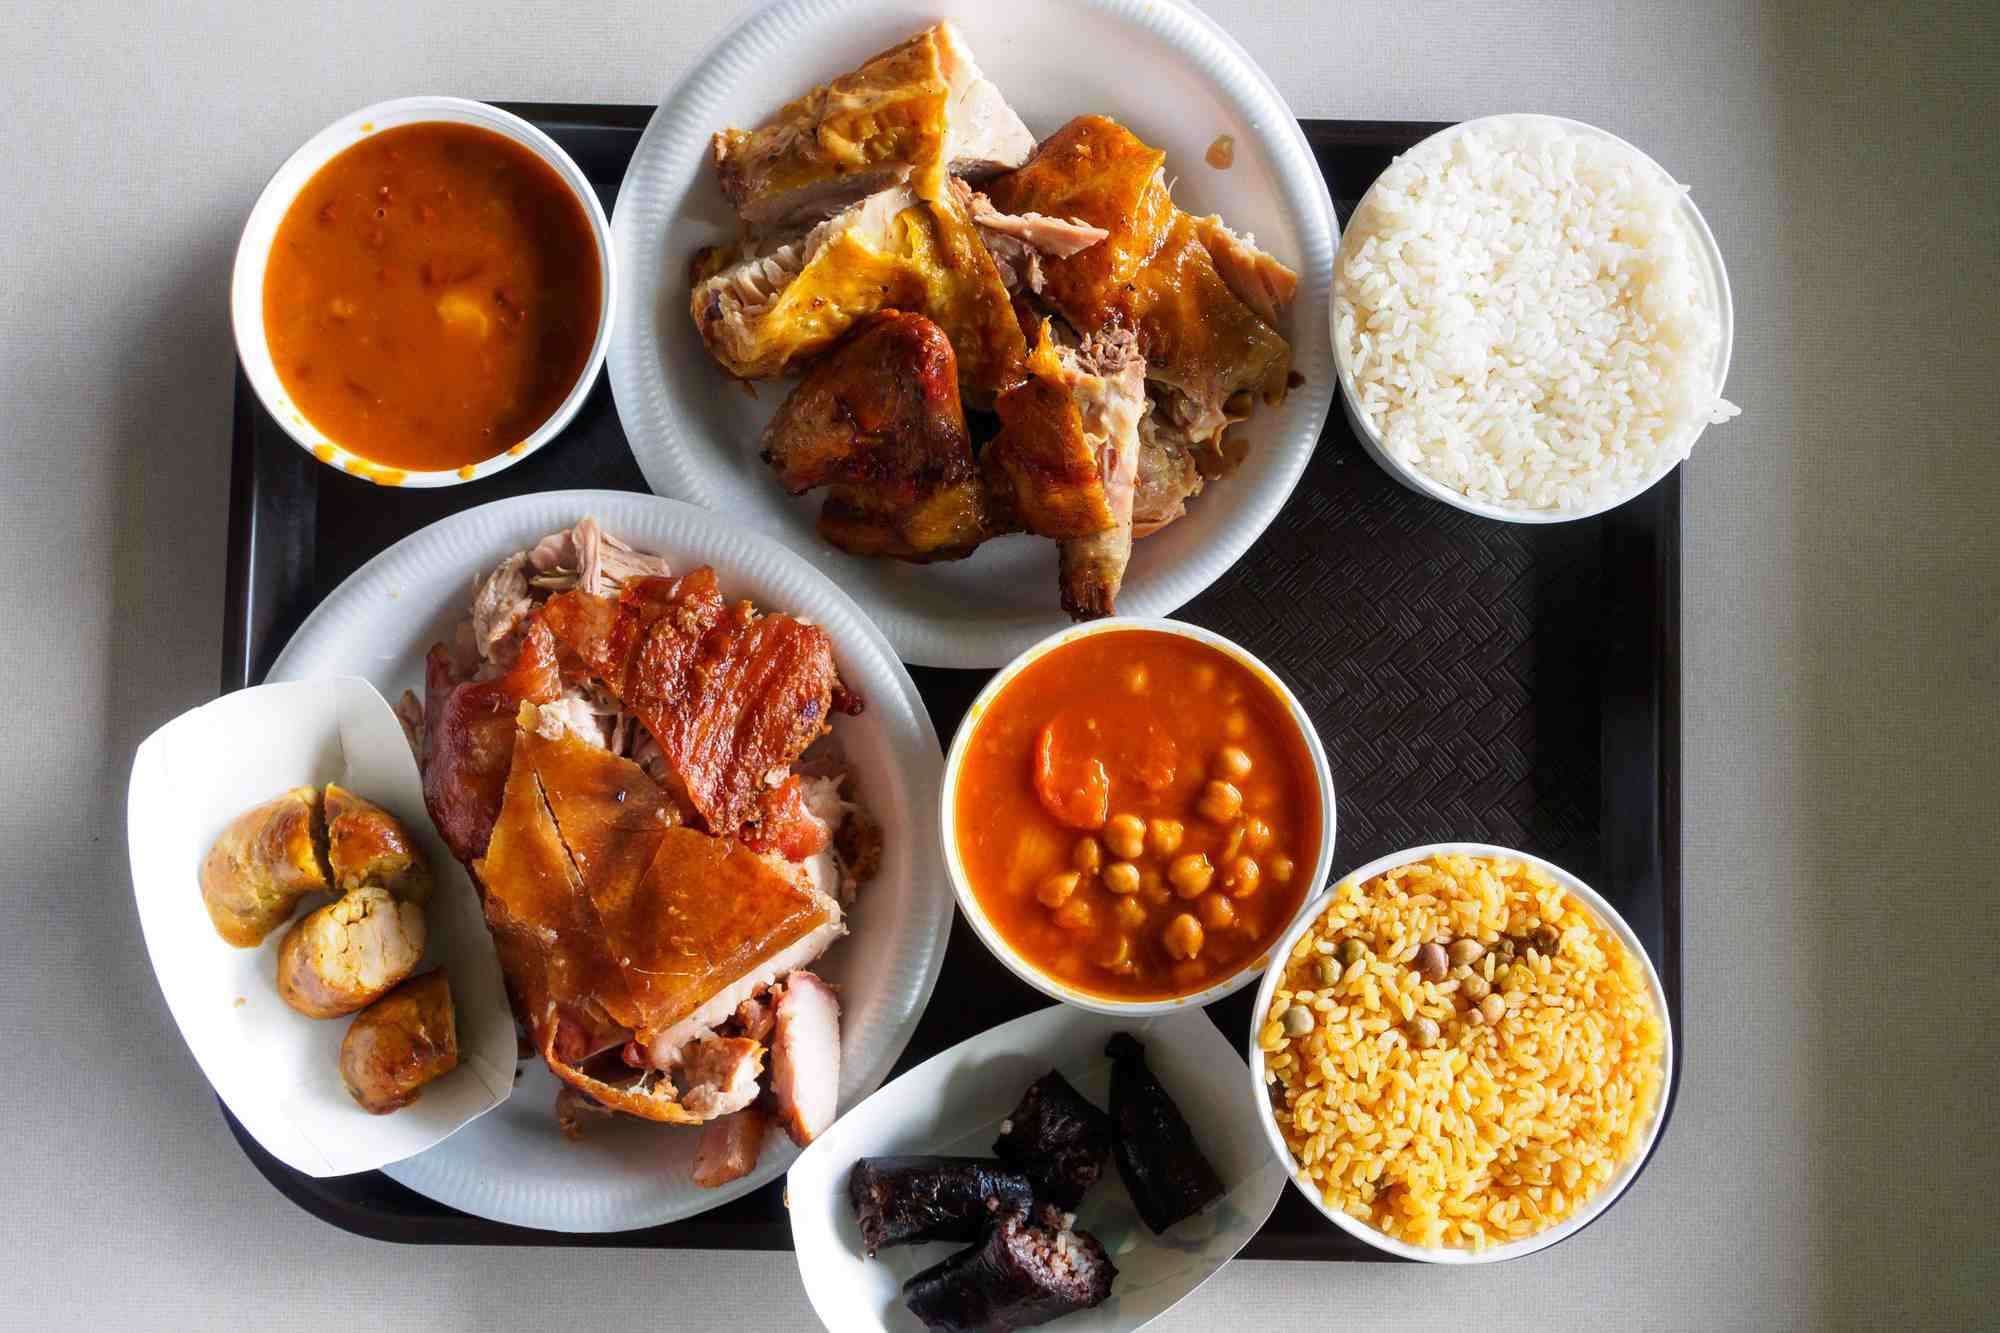 Platter of food at the lechoneras of Guavate